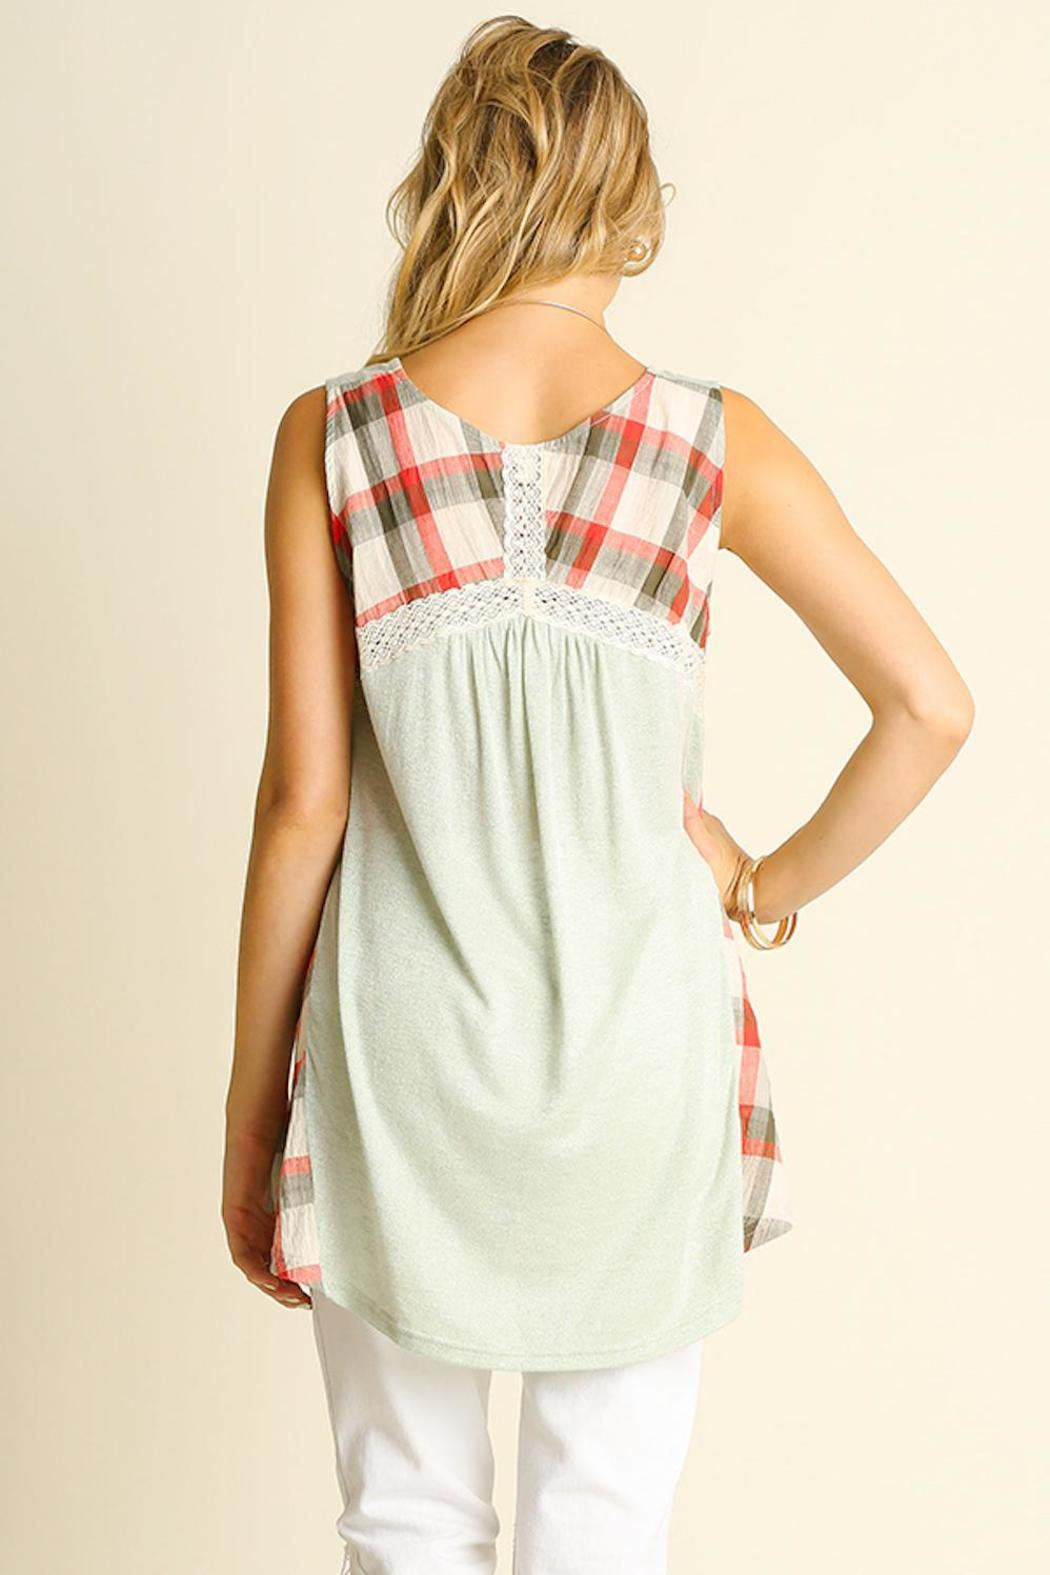 People Outfitter Beautiful Isabella Tank Top - Front Full Image